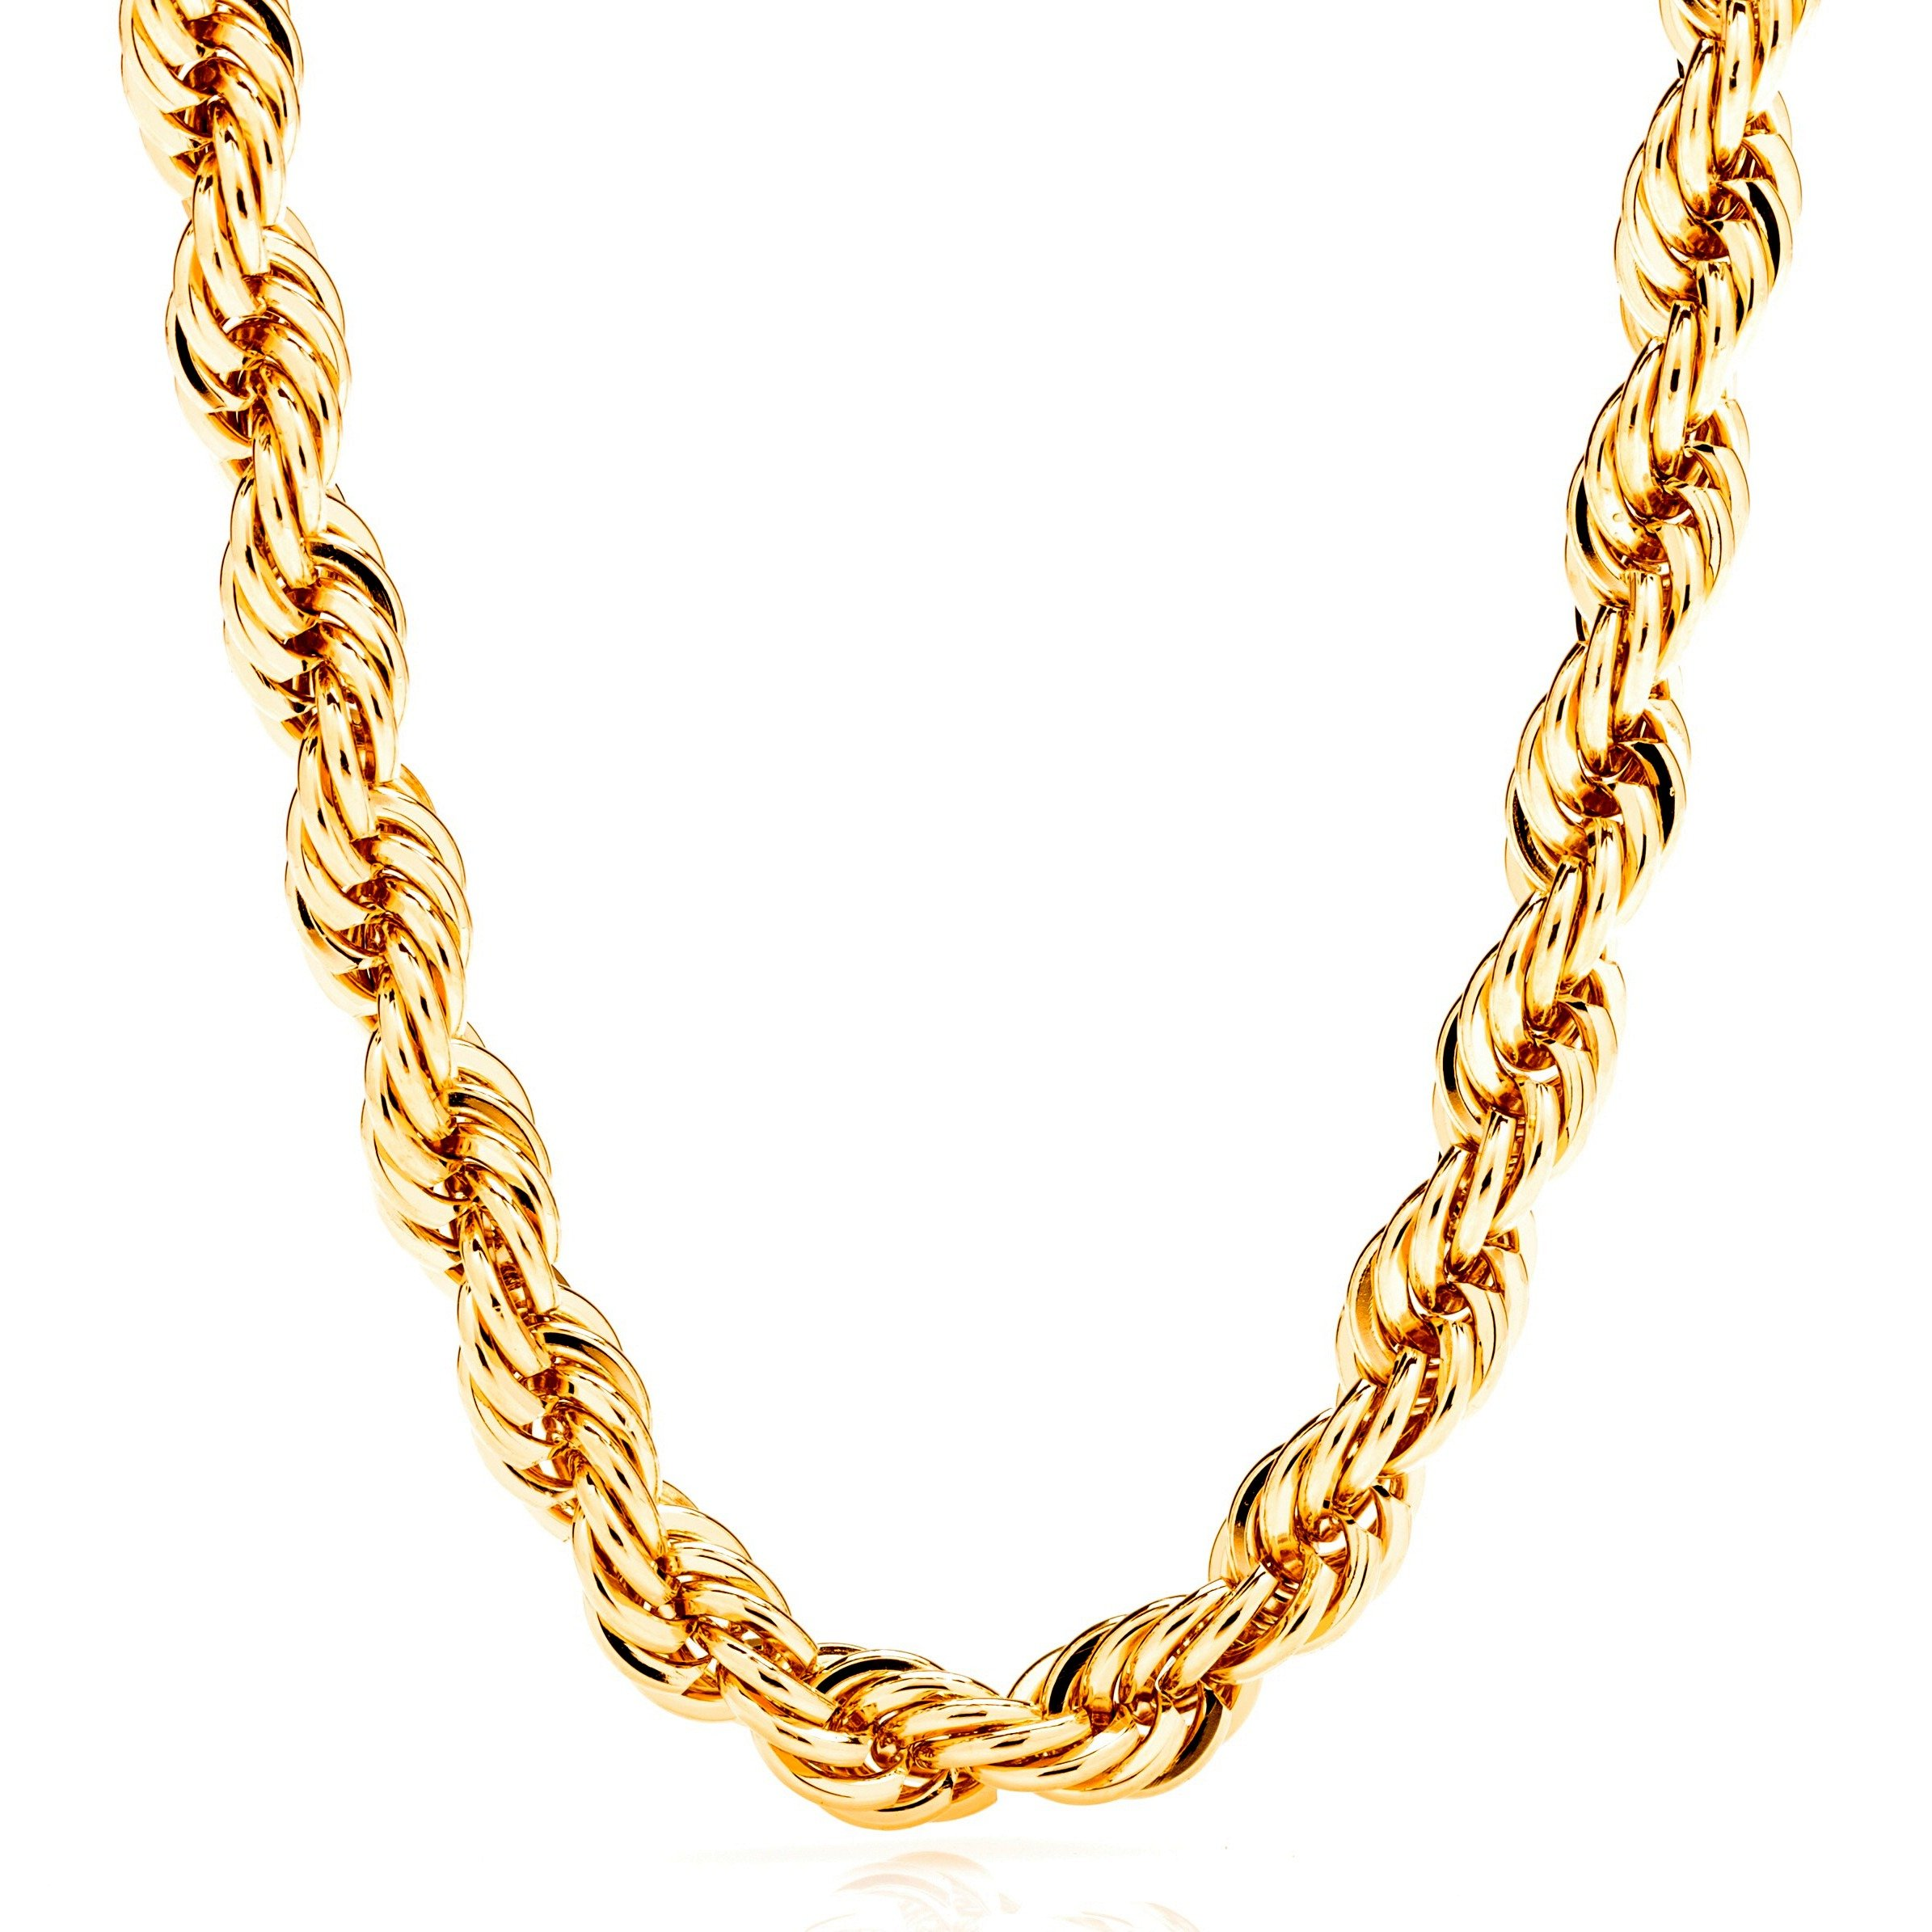 Lifetime Jewelry Rope Chain 7MM, 24K Diamond Cut Fashion Jewelry Necklaces in Yellow or White Gold Over Semi Precious Metals, Hip Hop or Classic, Comes with Box or Pouch, 24 Inches by Lifetime Jewelry